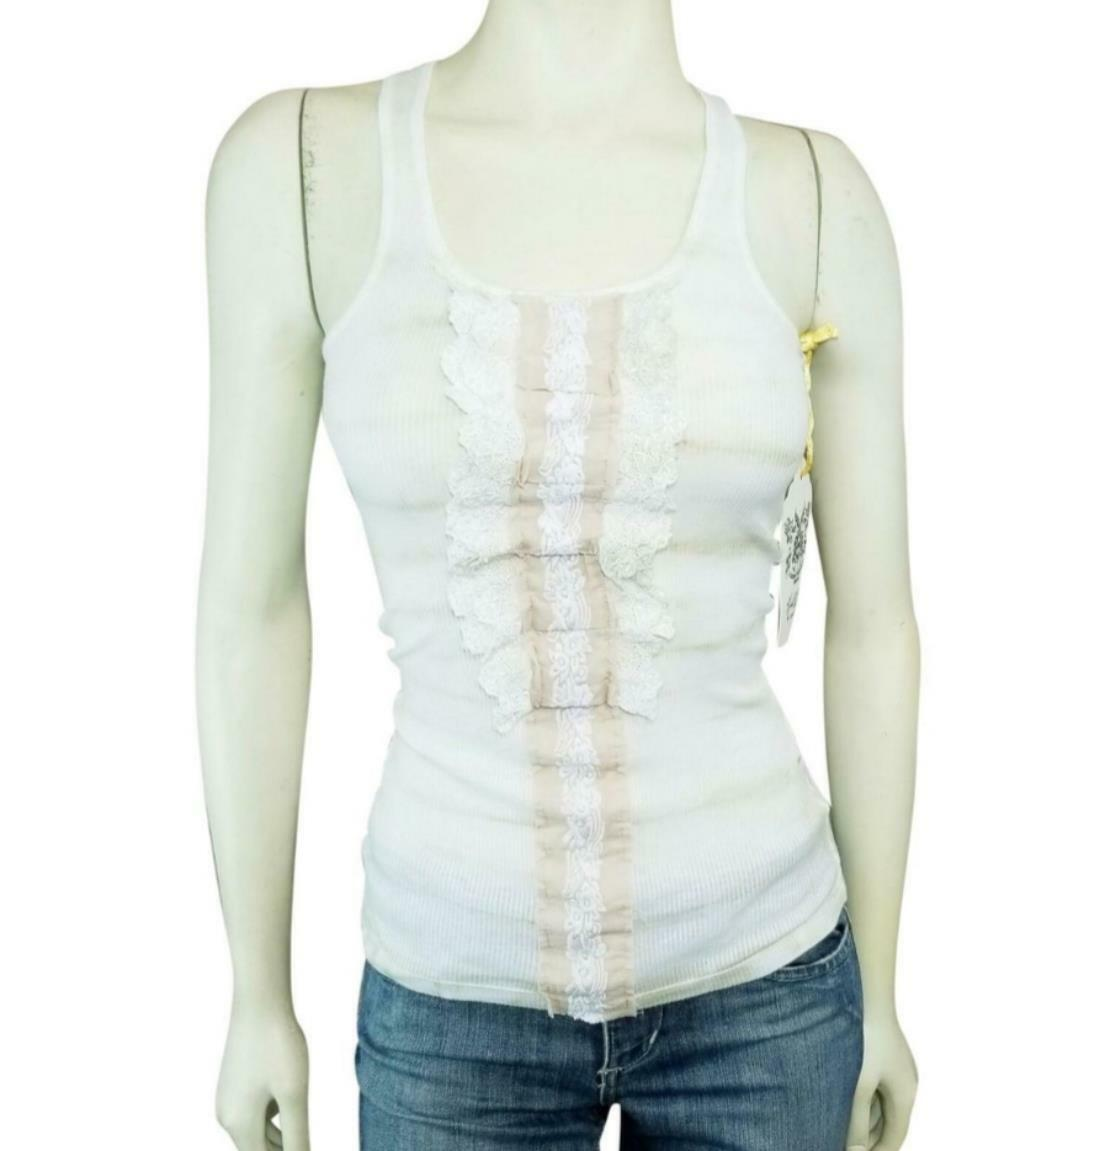 Hale Bob Camisole Tank Top XS Ivory Lace Floral Embroiderot Pearls Ruffles New